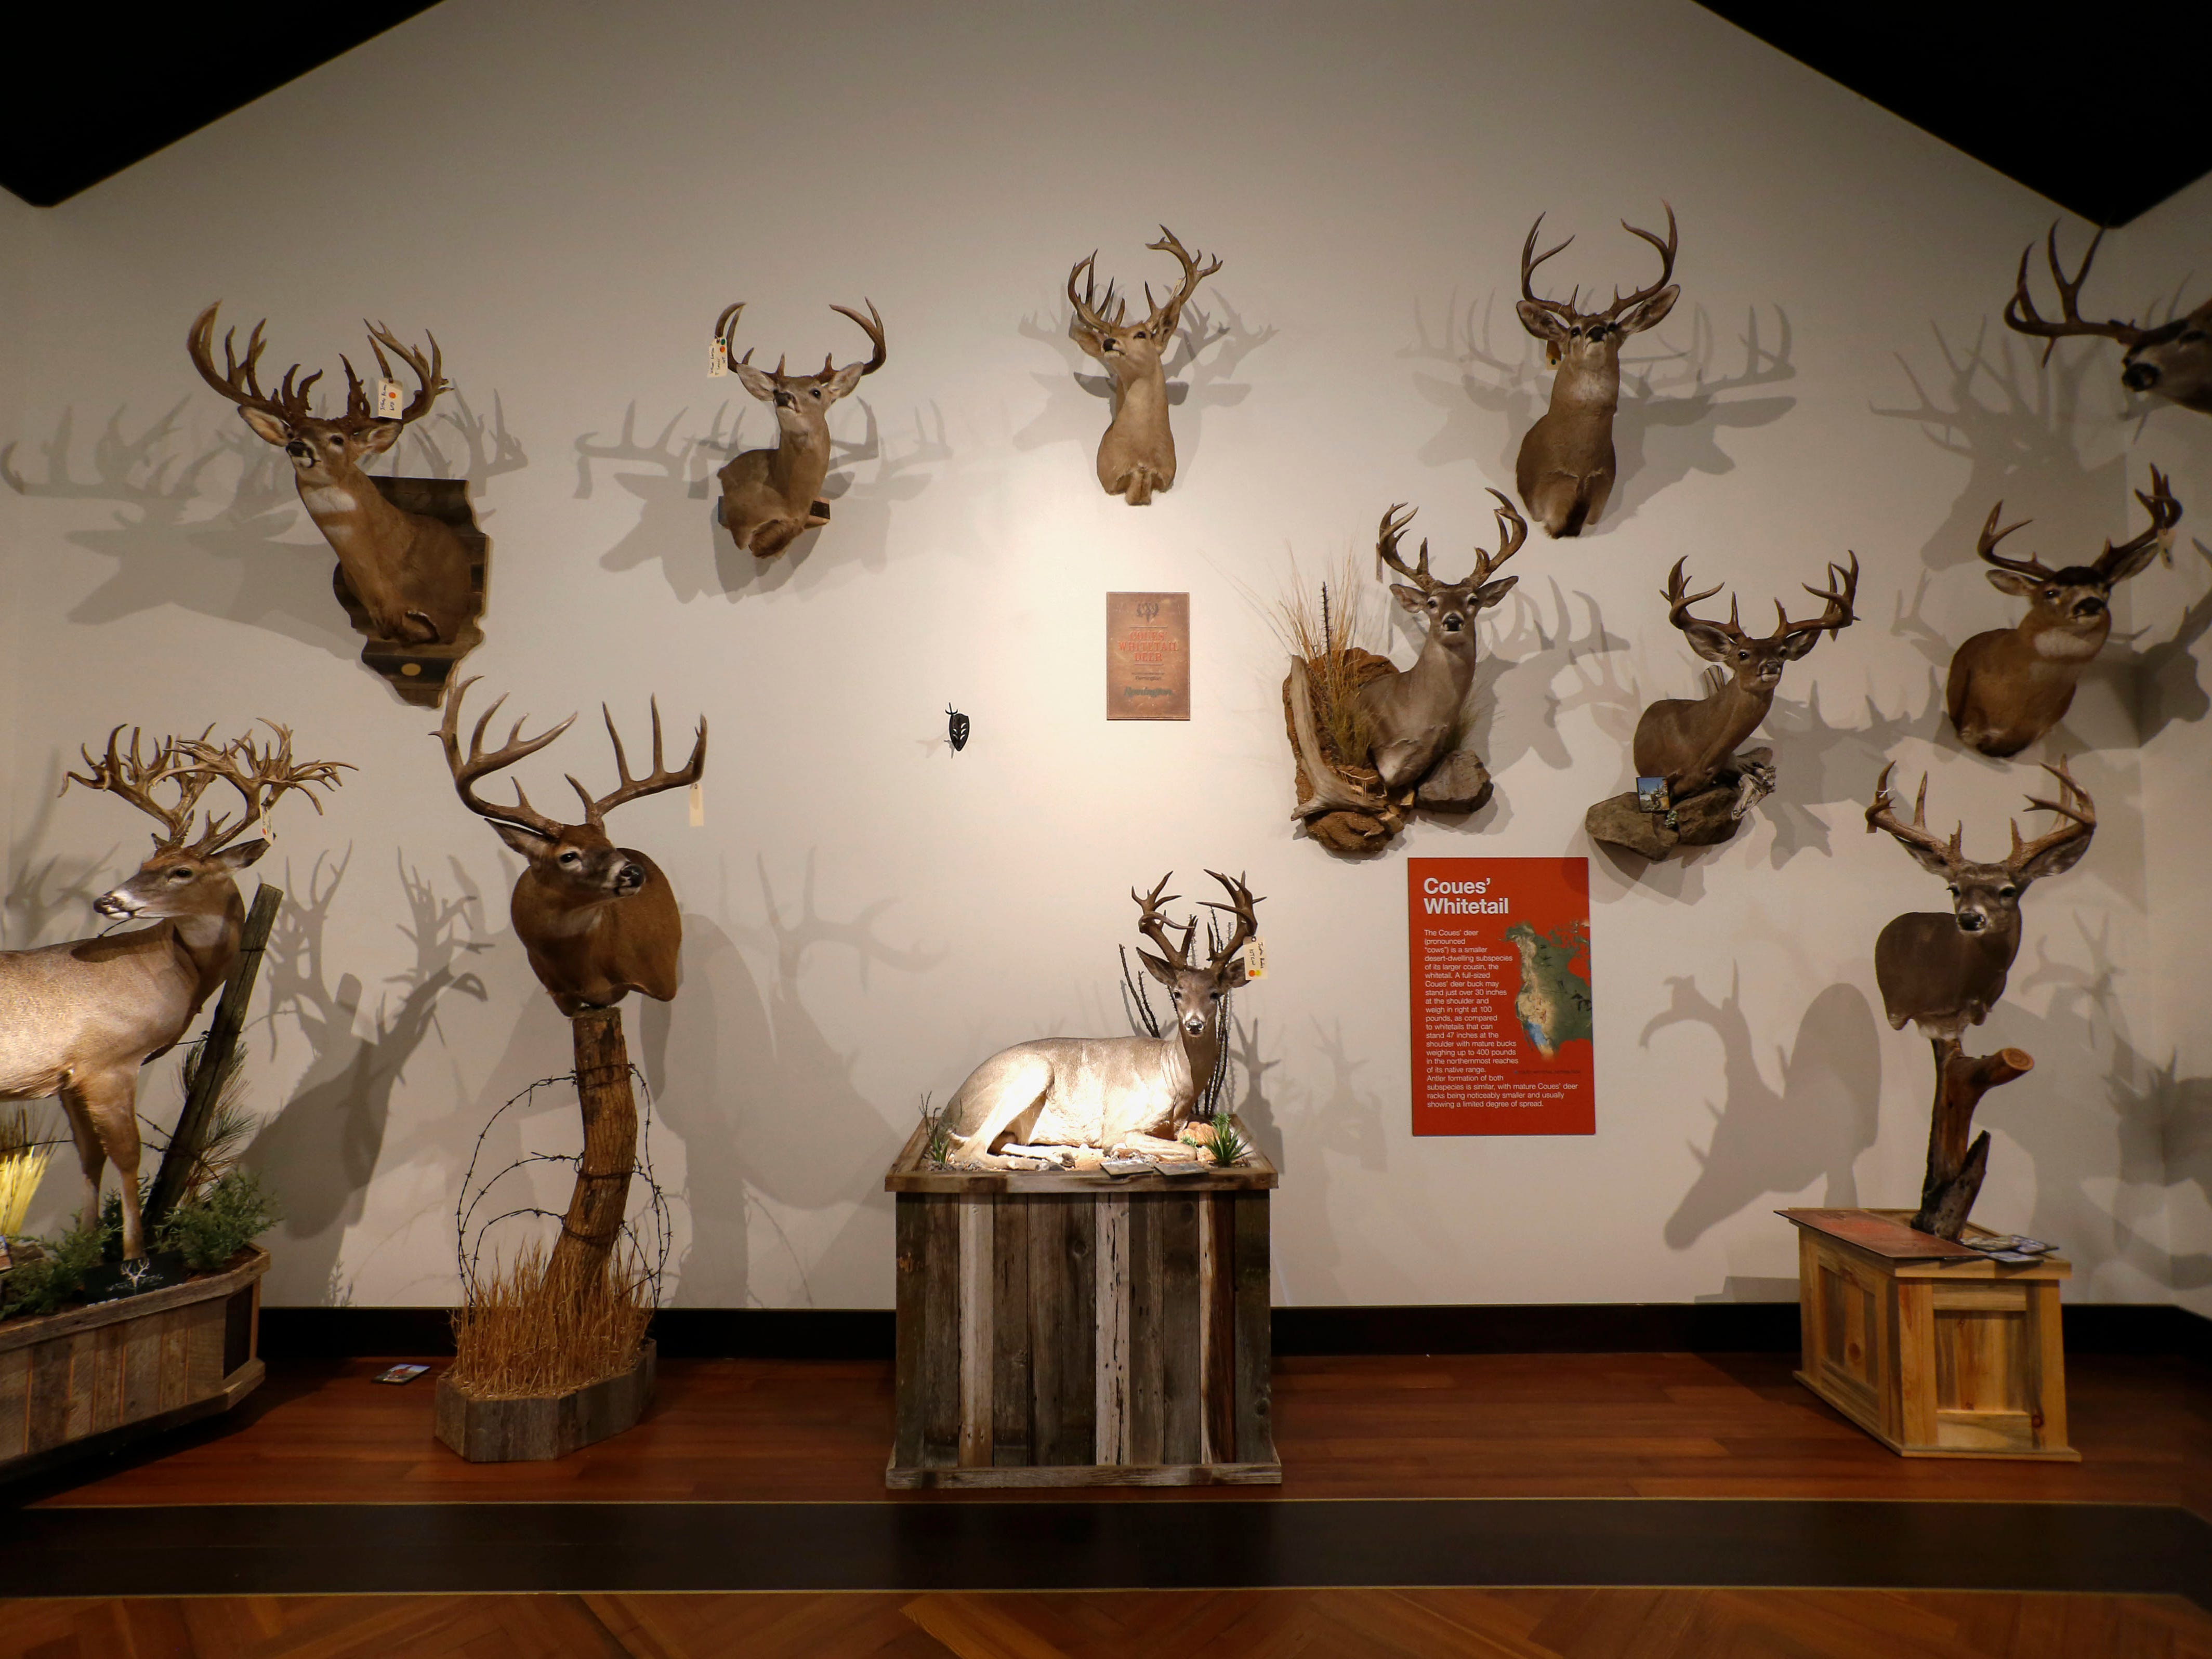 Deer represent just one of the 26 species on display at Bass Pro Shops in Springfield from Saturday until Aug. 4. as part of a display from the Boone and Crockett Club.